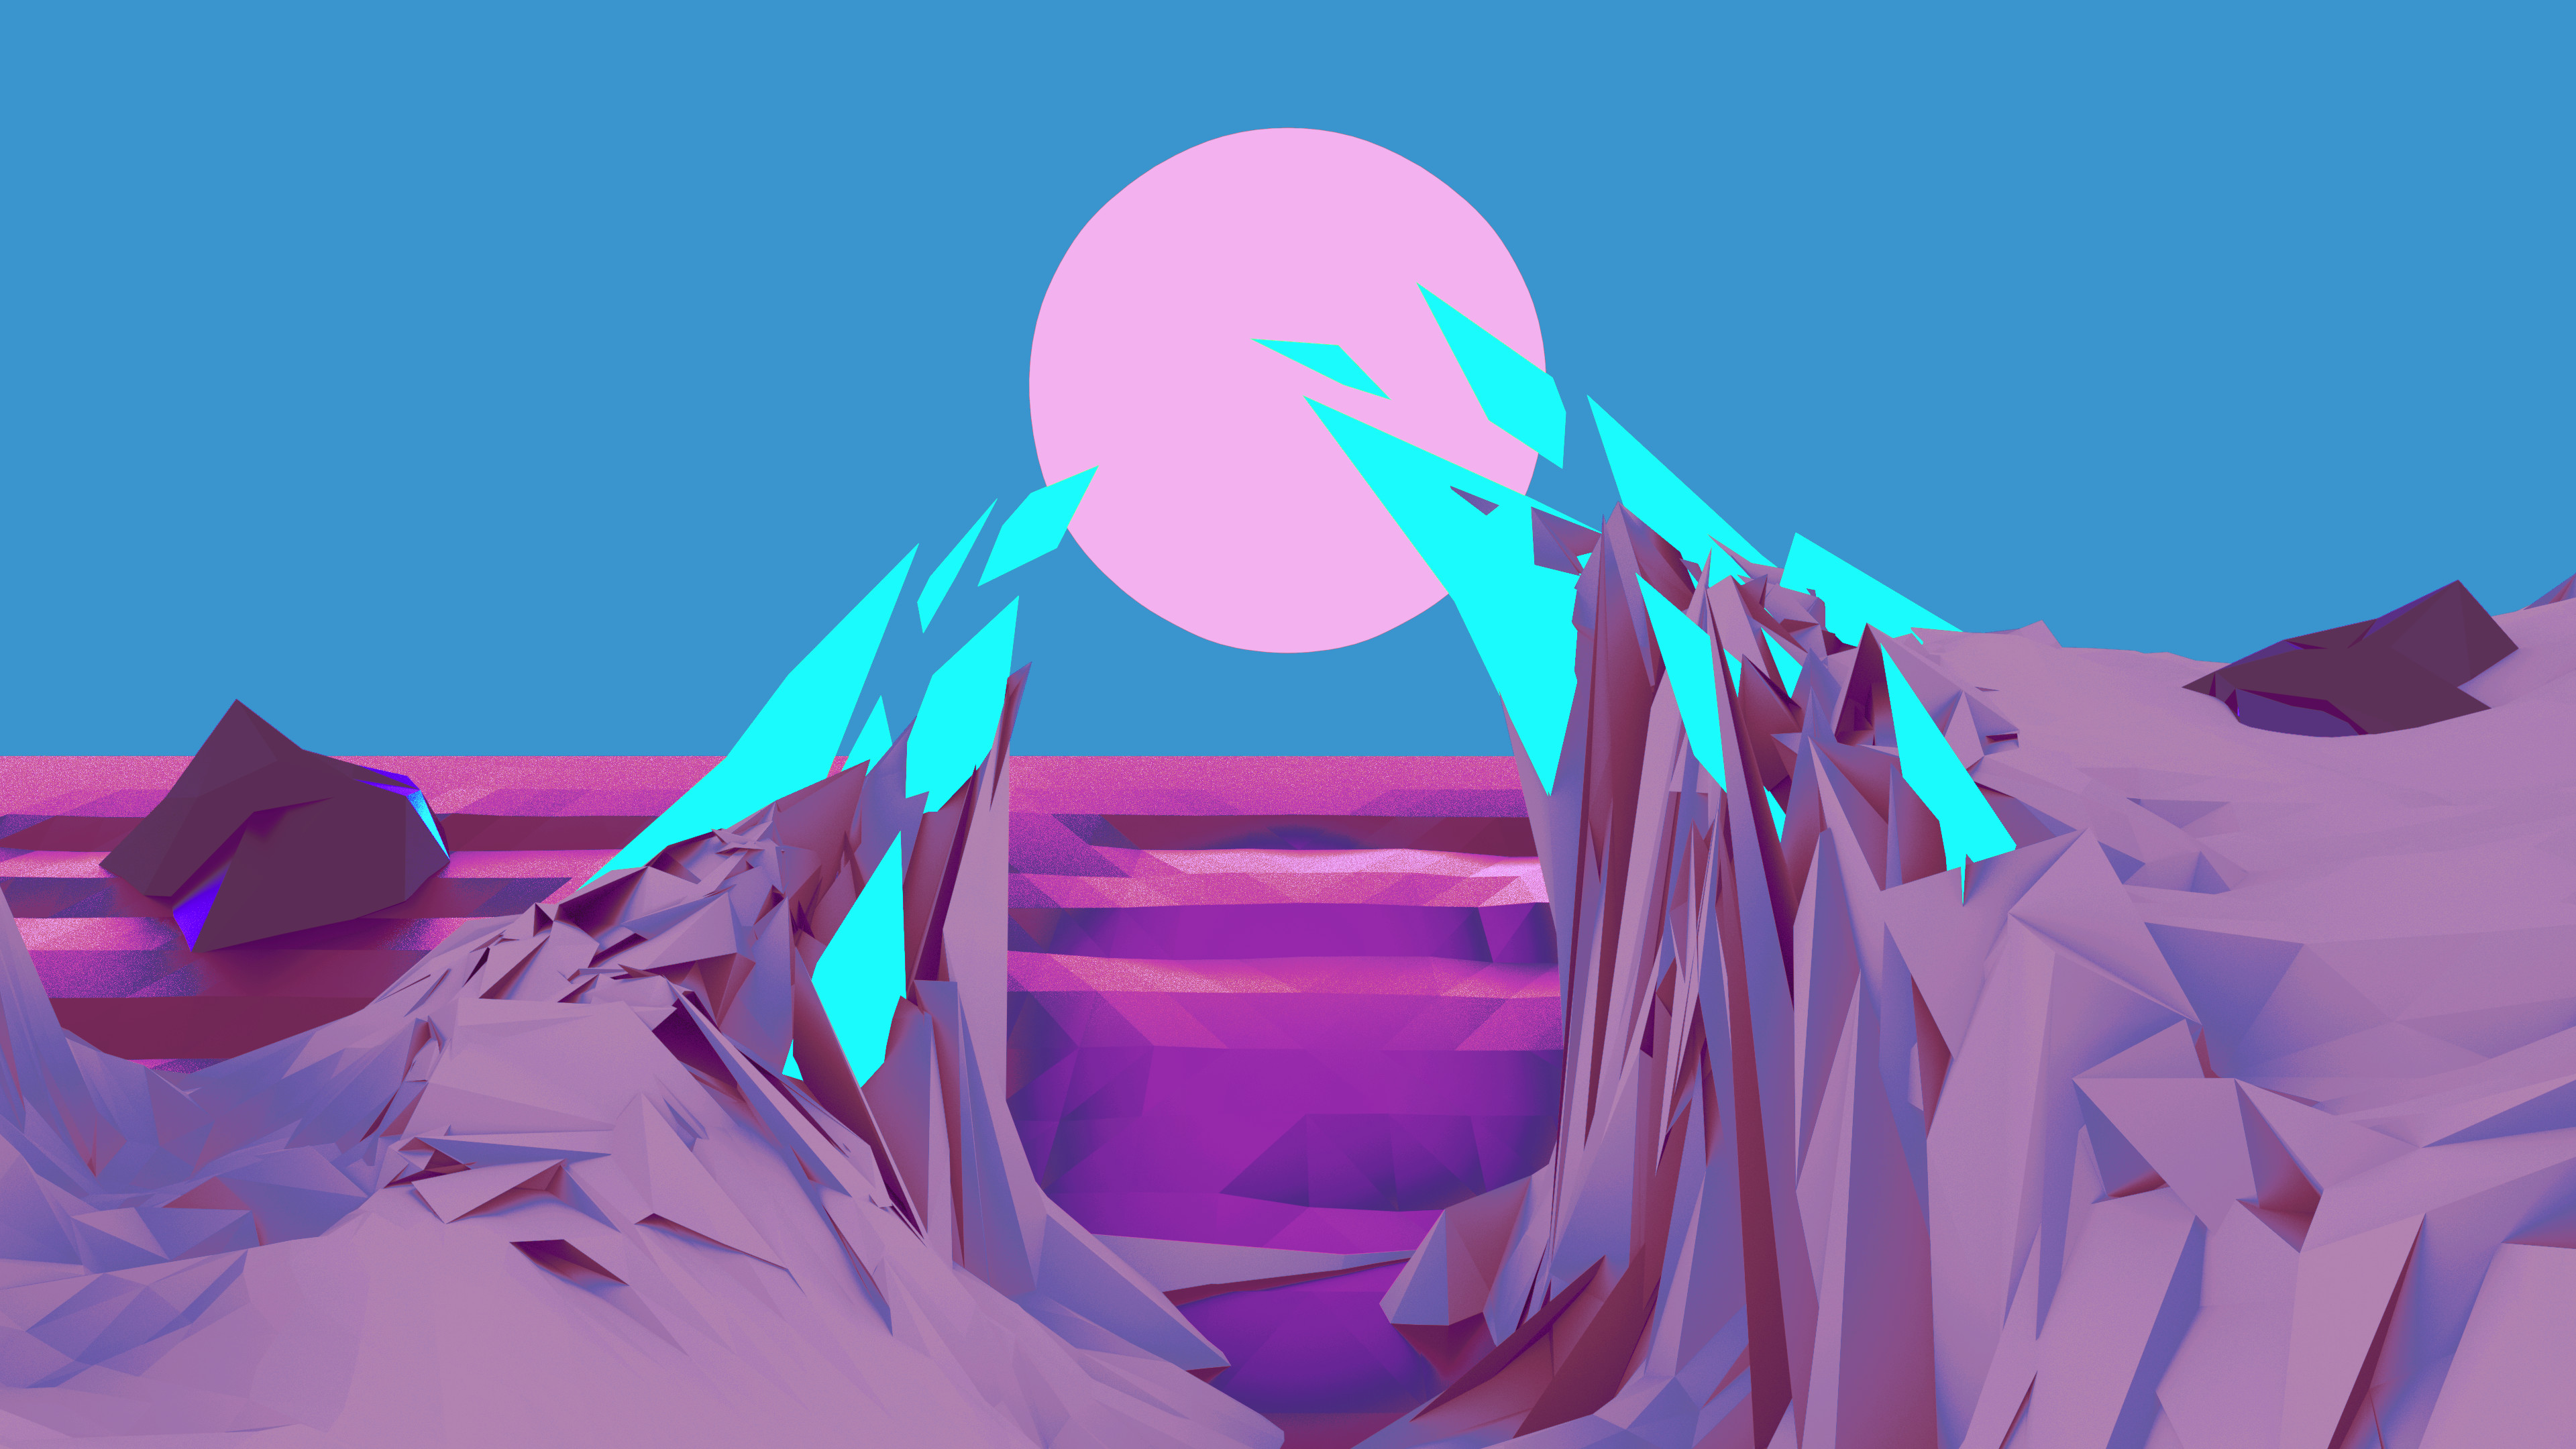 Res: 3840x2160, ... Low Poly Wallpaper (Purple/Blue) by Bluhurr